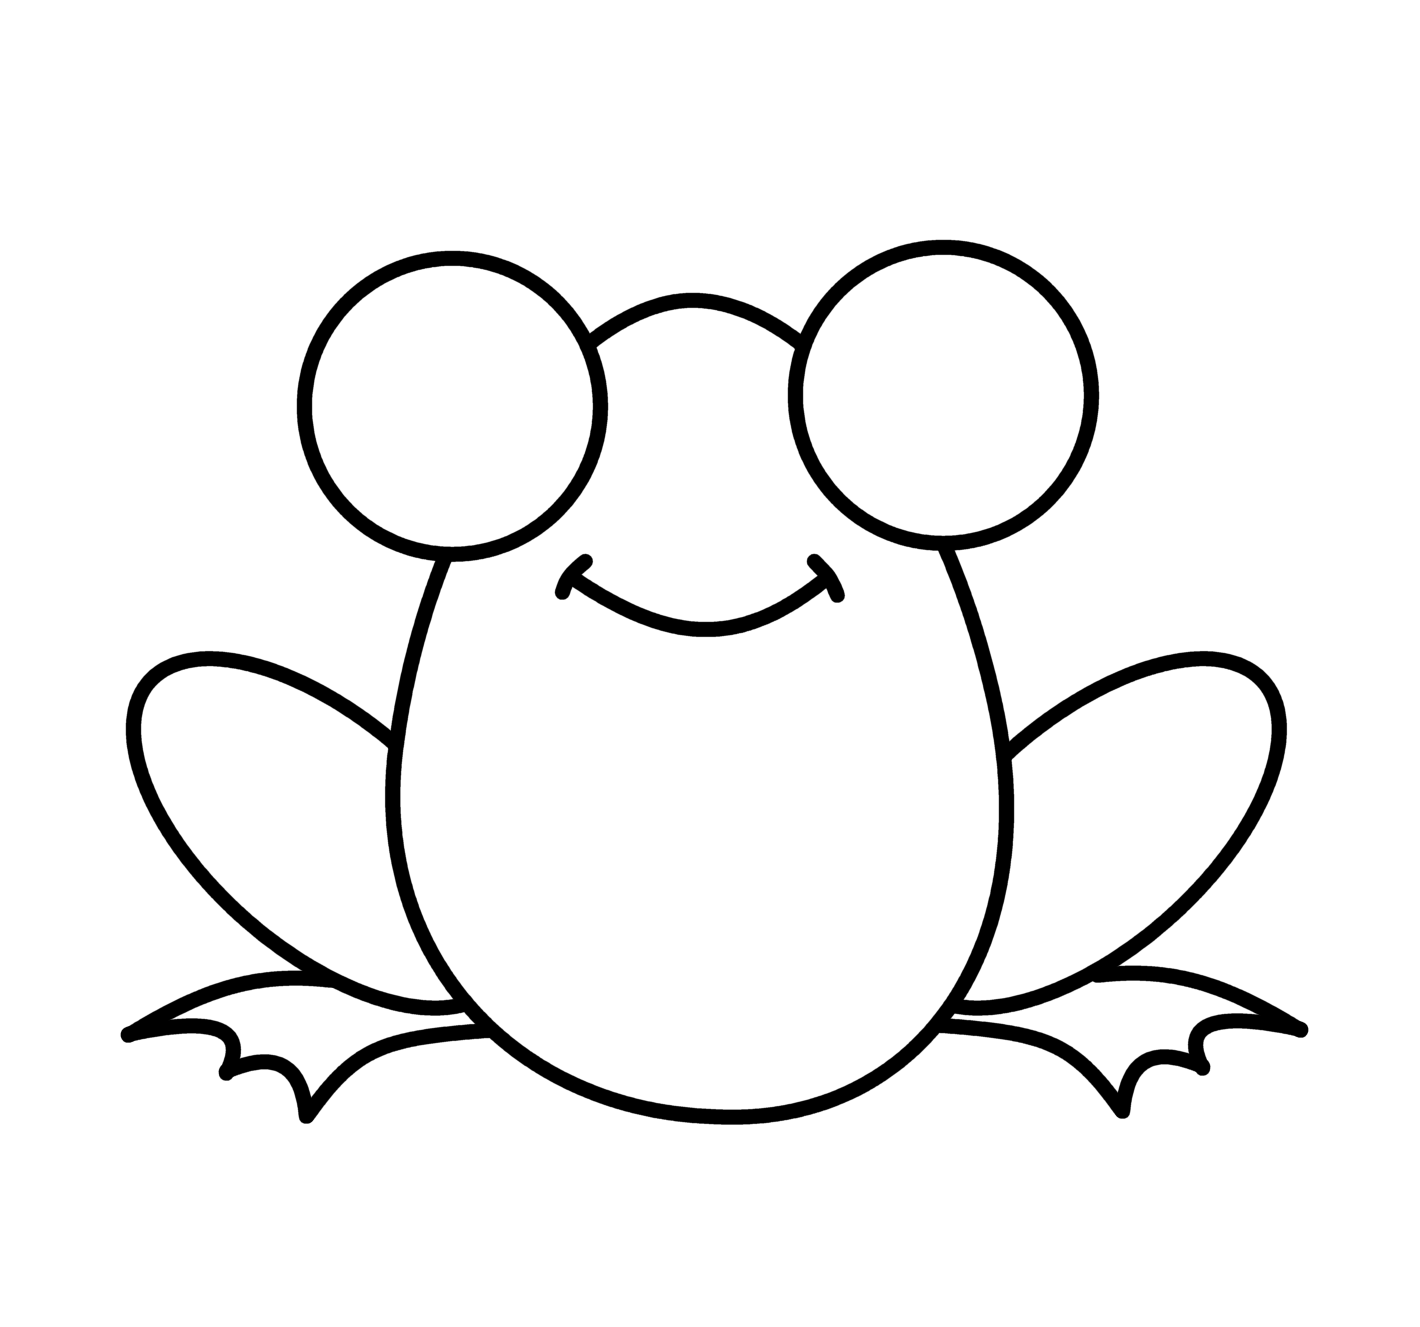 Frog start and finish line clipart vector royalty free download How To Draw Cartoons: Frog | Simple drawings | Frog drawing, Easy ... vector royalty free download